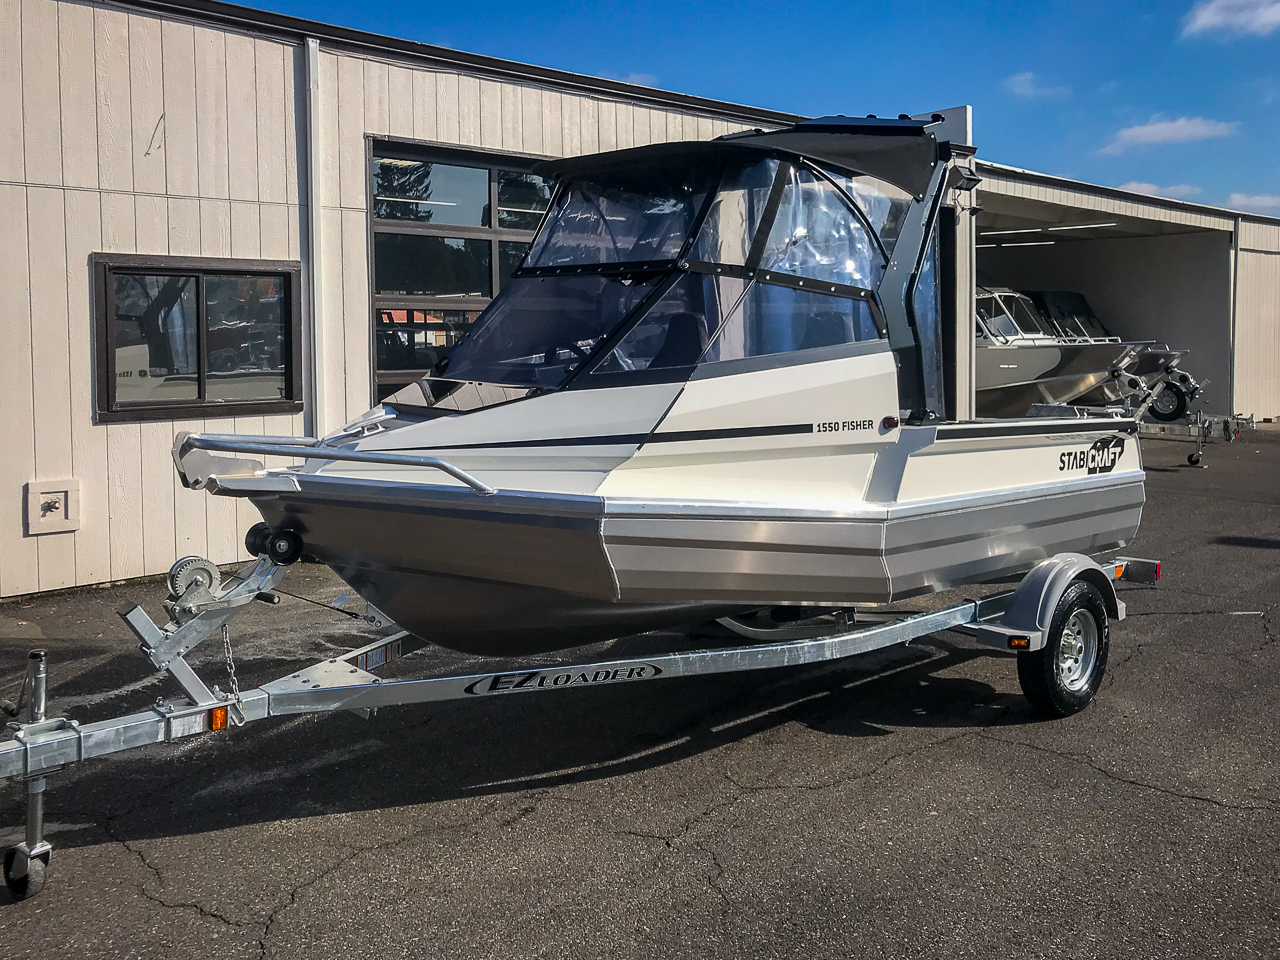 2022 STABICRAFT 1550 Fisher - ON ORDER